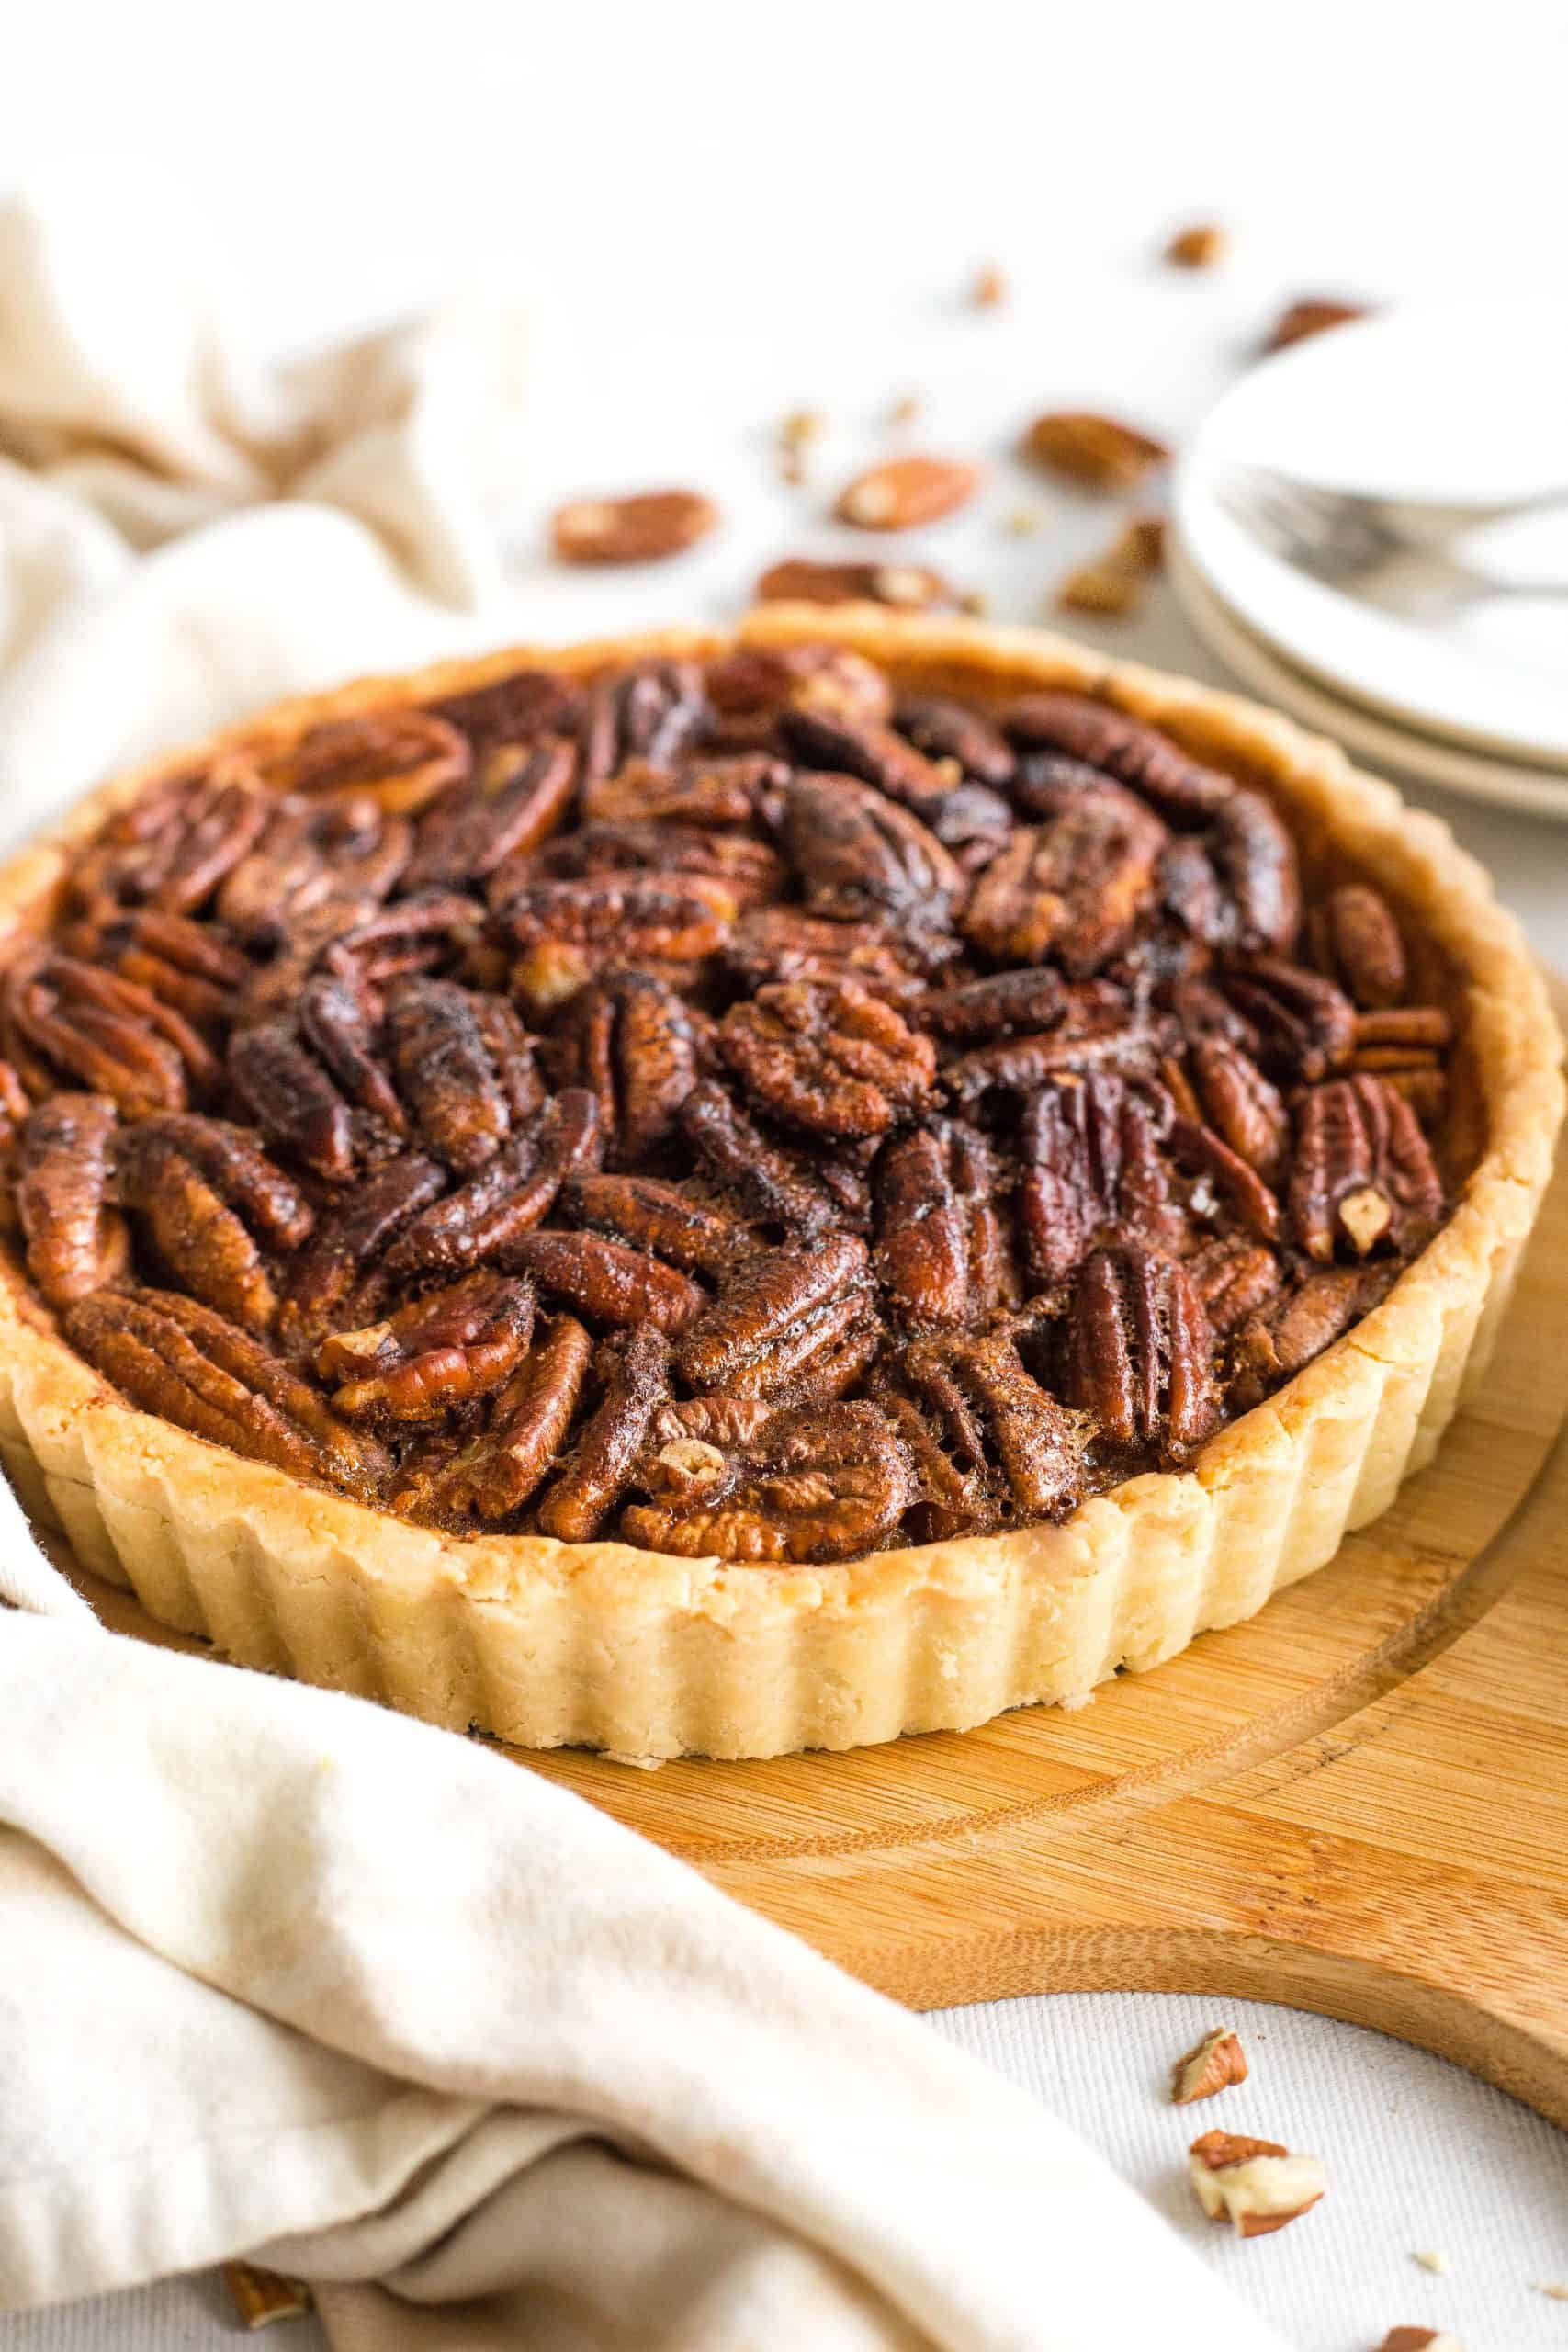 Pecan pie on a wooden board.